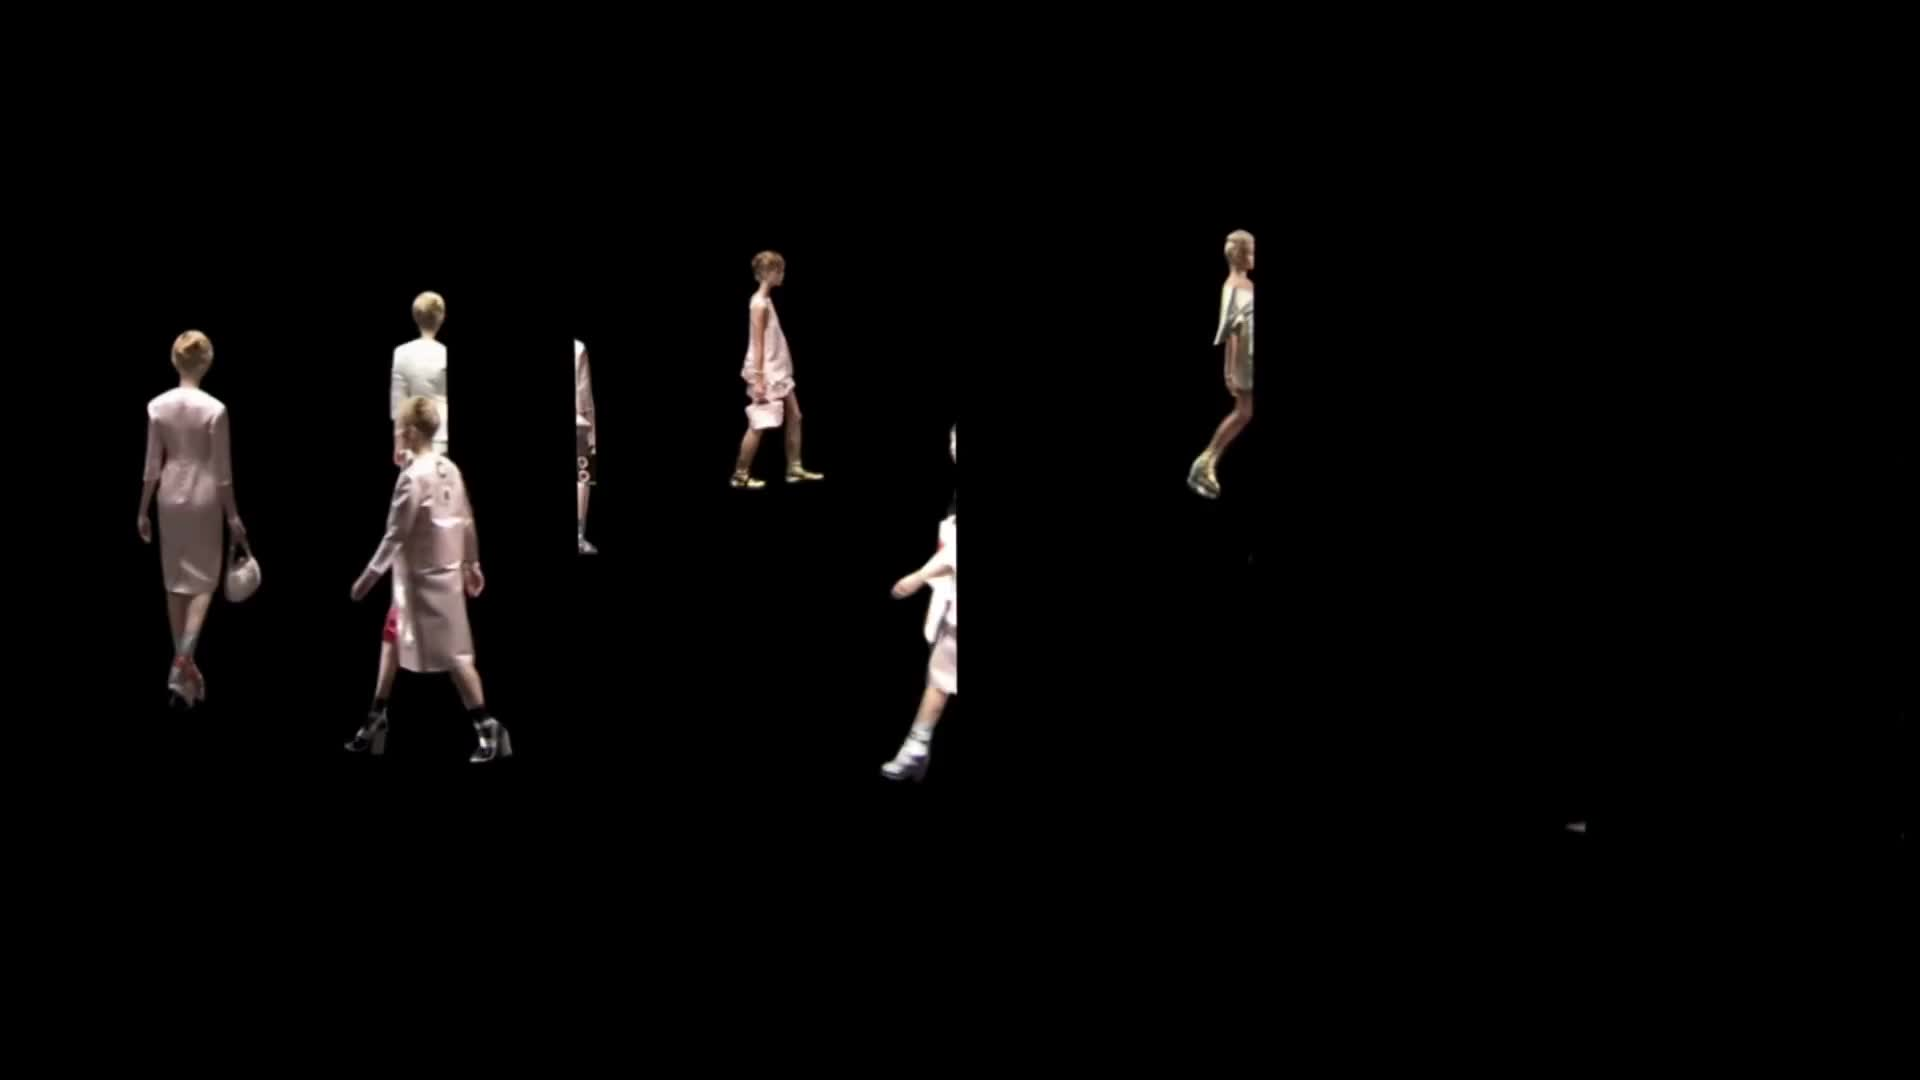 Prada flowers logo design cgi fashion catwalk runway animation